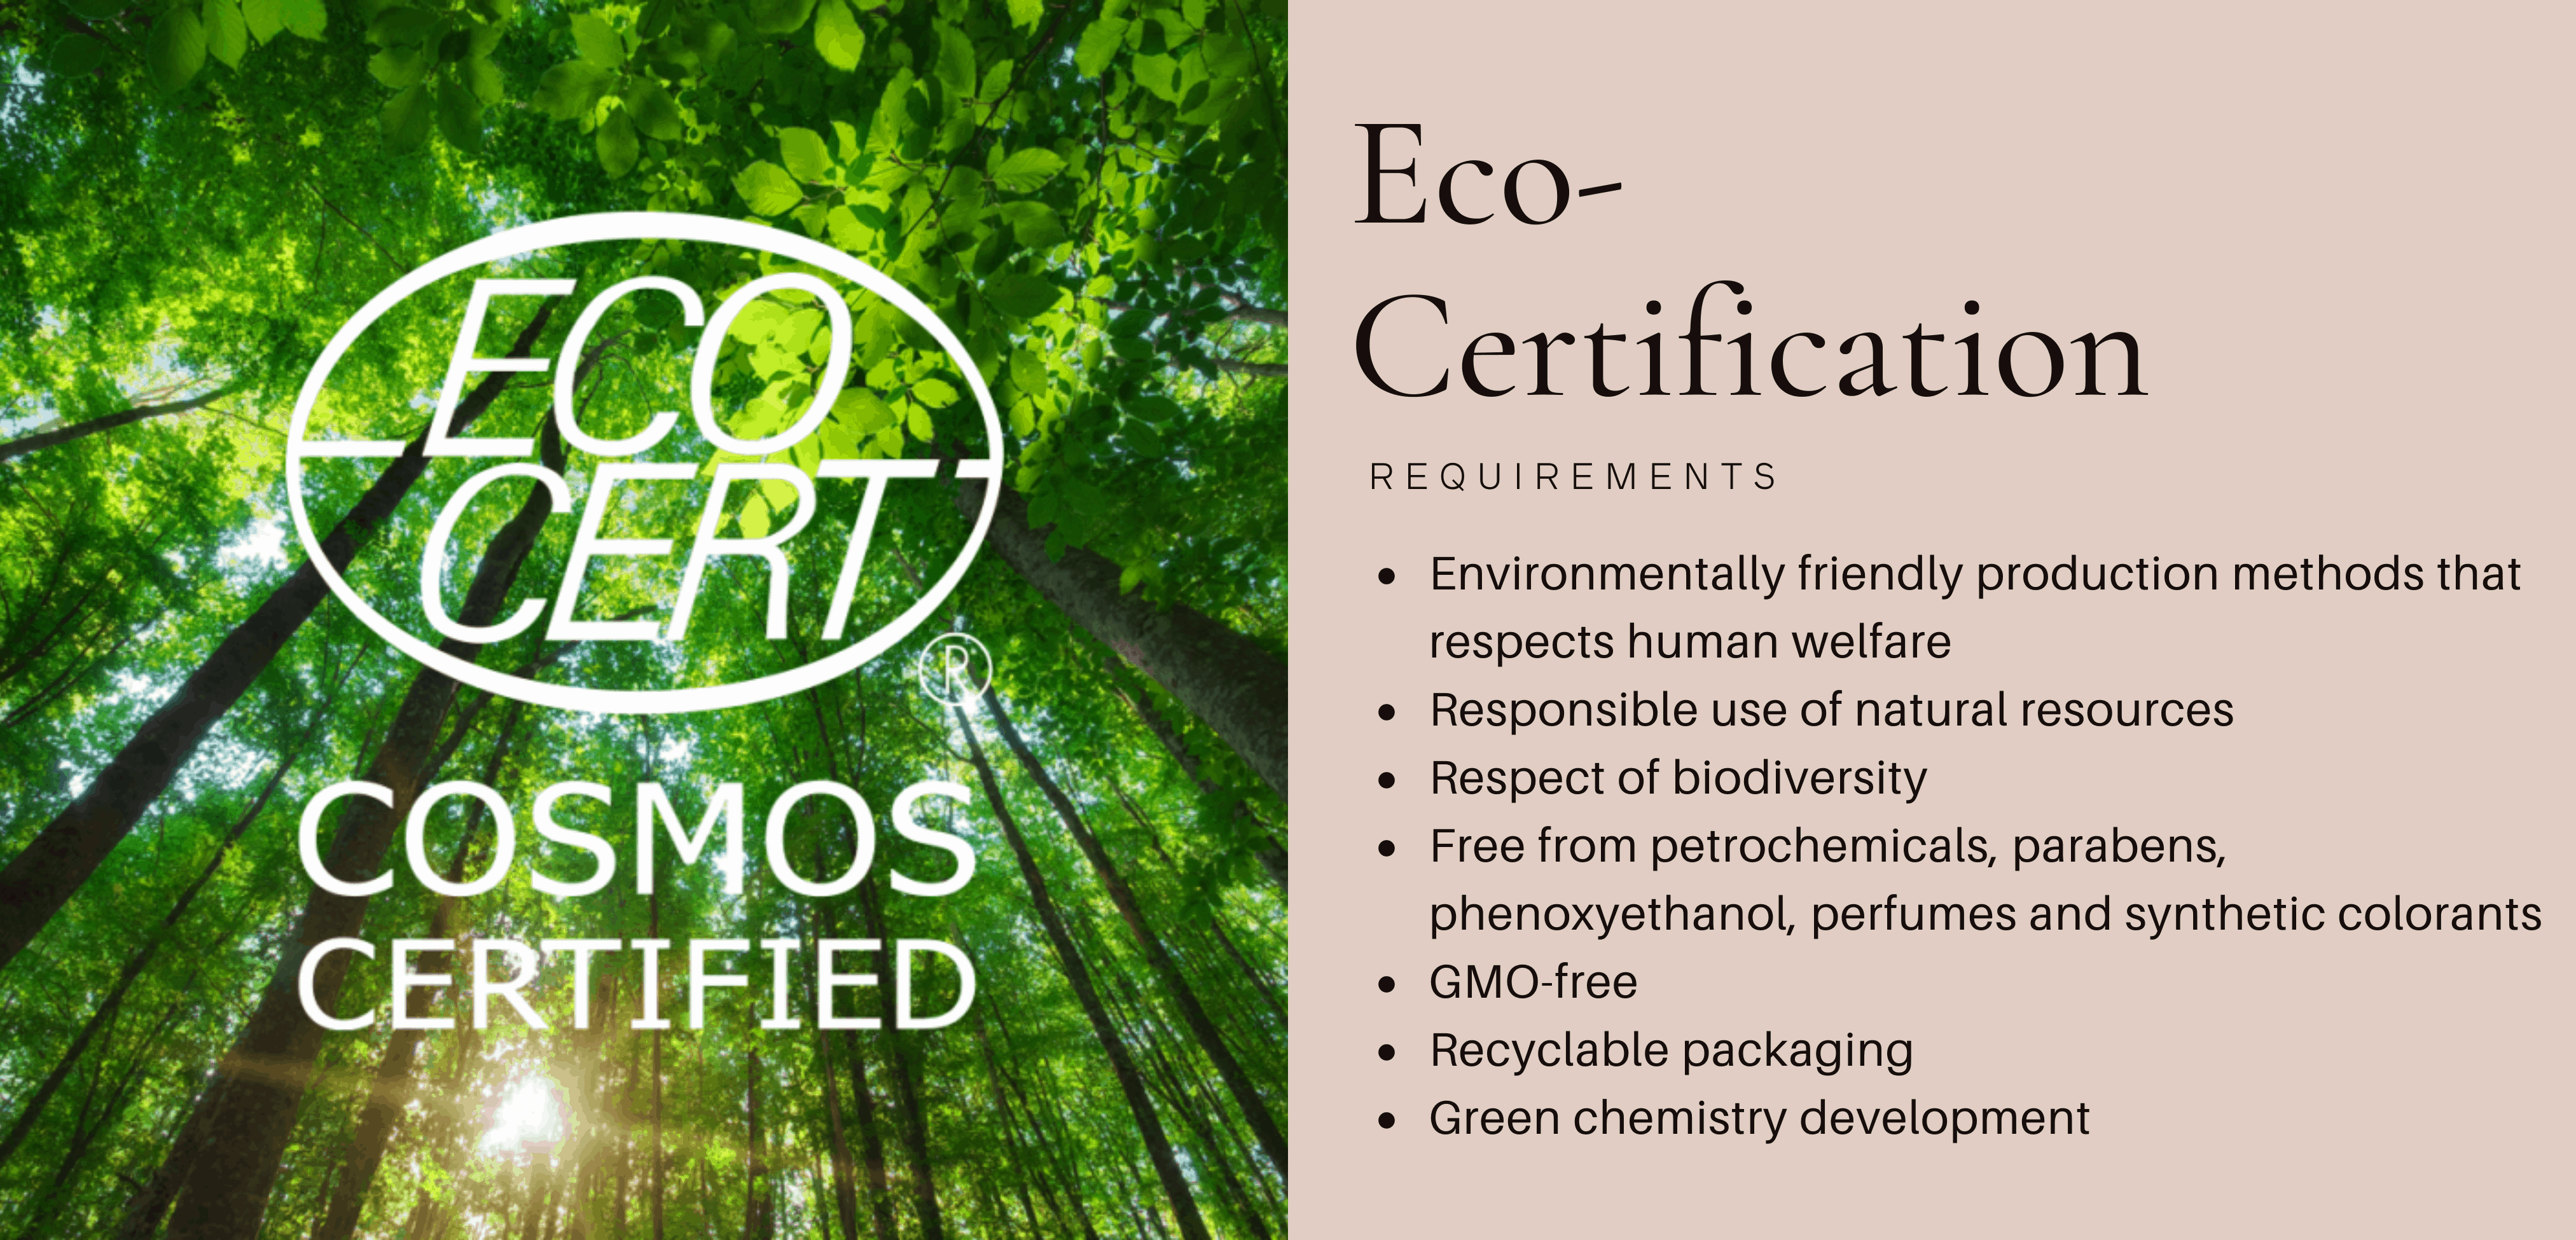 Environmentally friendly production methods that respects human welfare Responsible use of natural resources Respect of biodiversity Free from petrochemicals, parabens, phenoxyethanol, perfumes and synthetic colorants GMO-free Recyclable packaging Green chemistry development